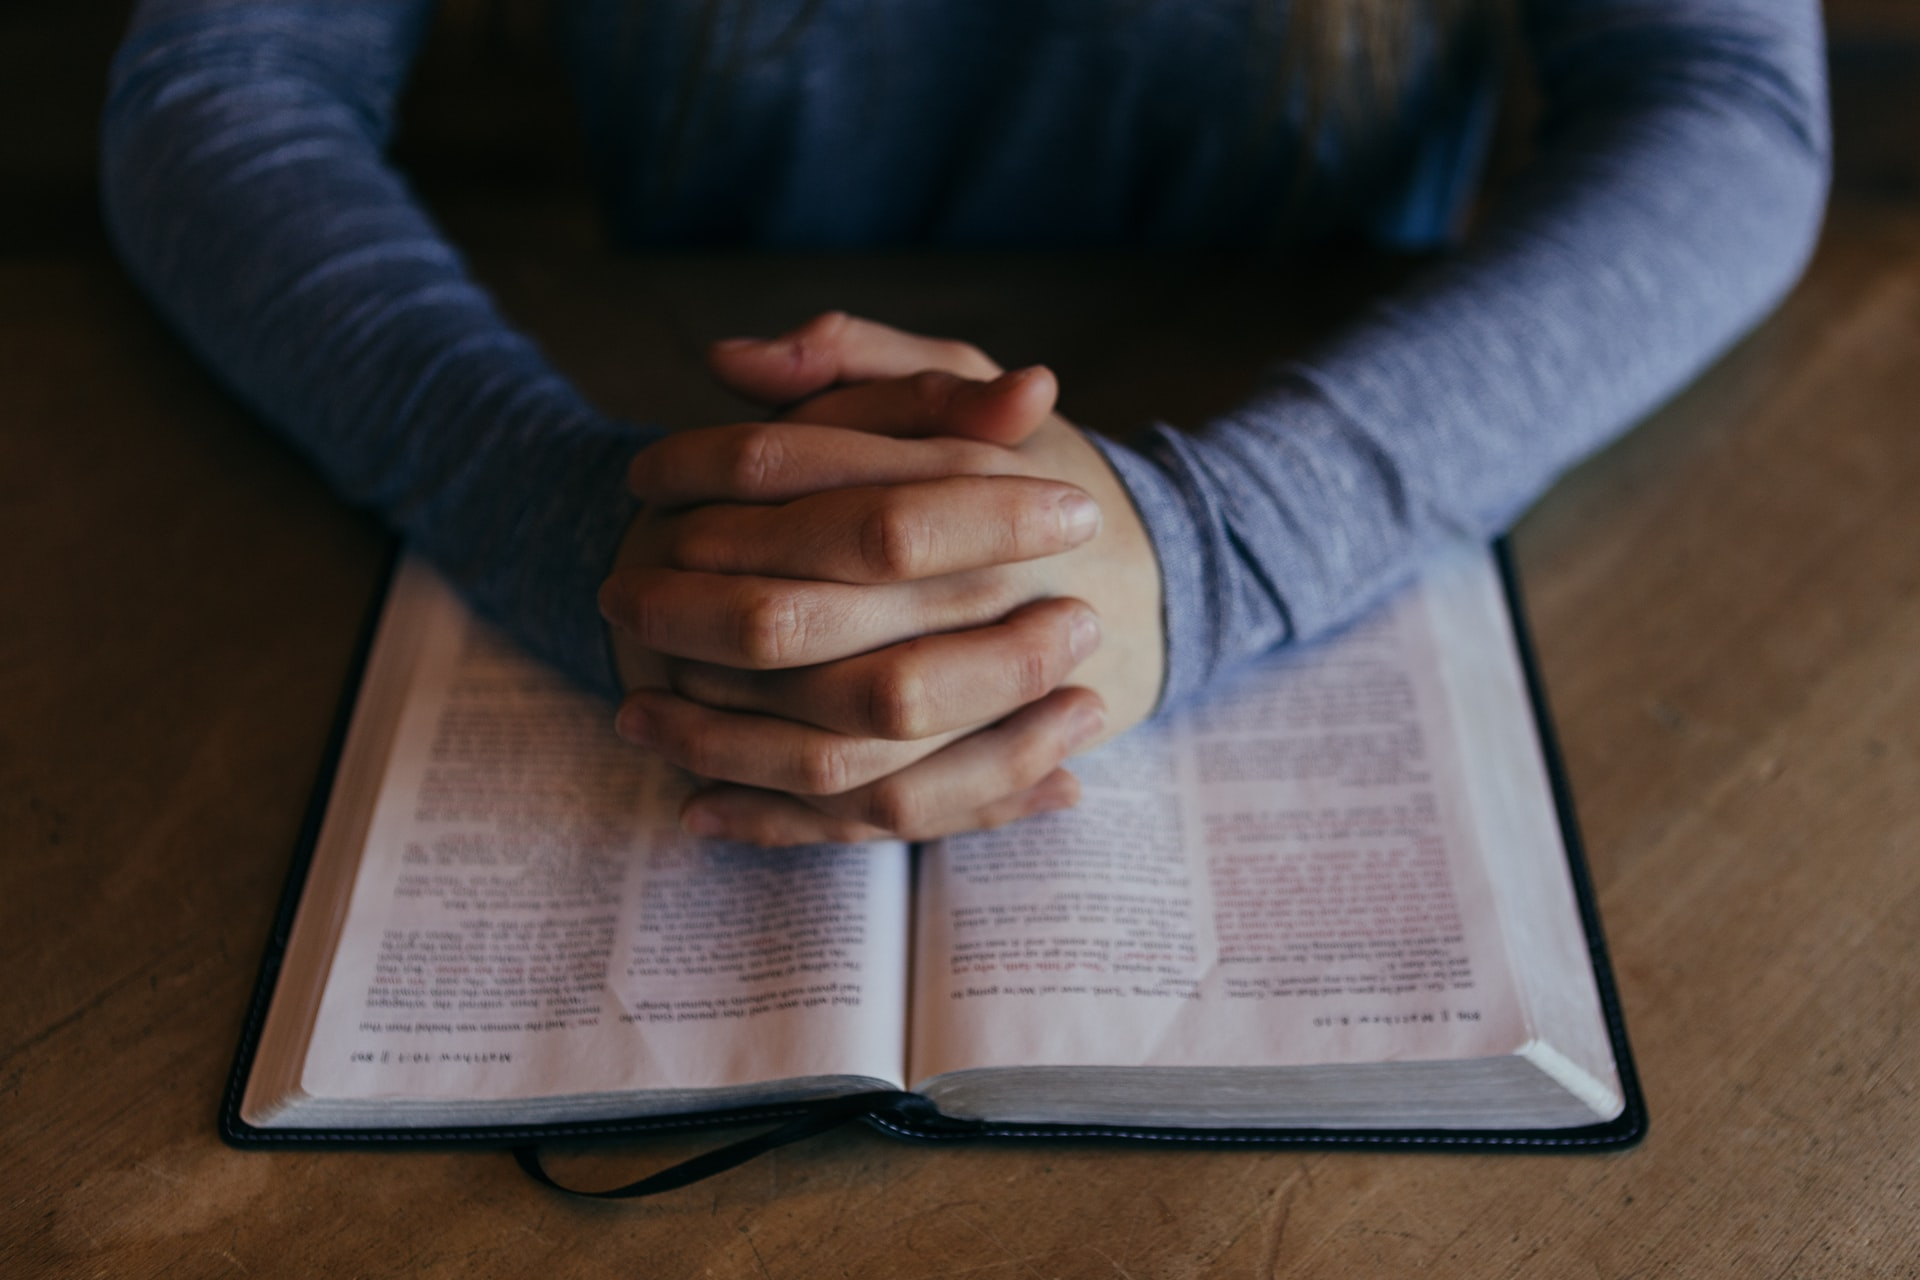 Practicing Religion Amid COVID-19: How to Connect With Your Church Community Safely